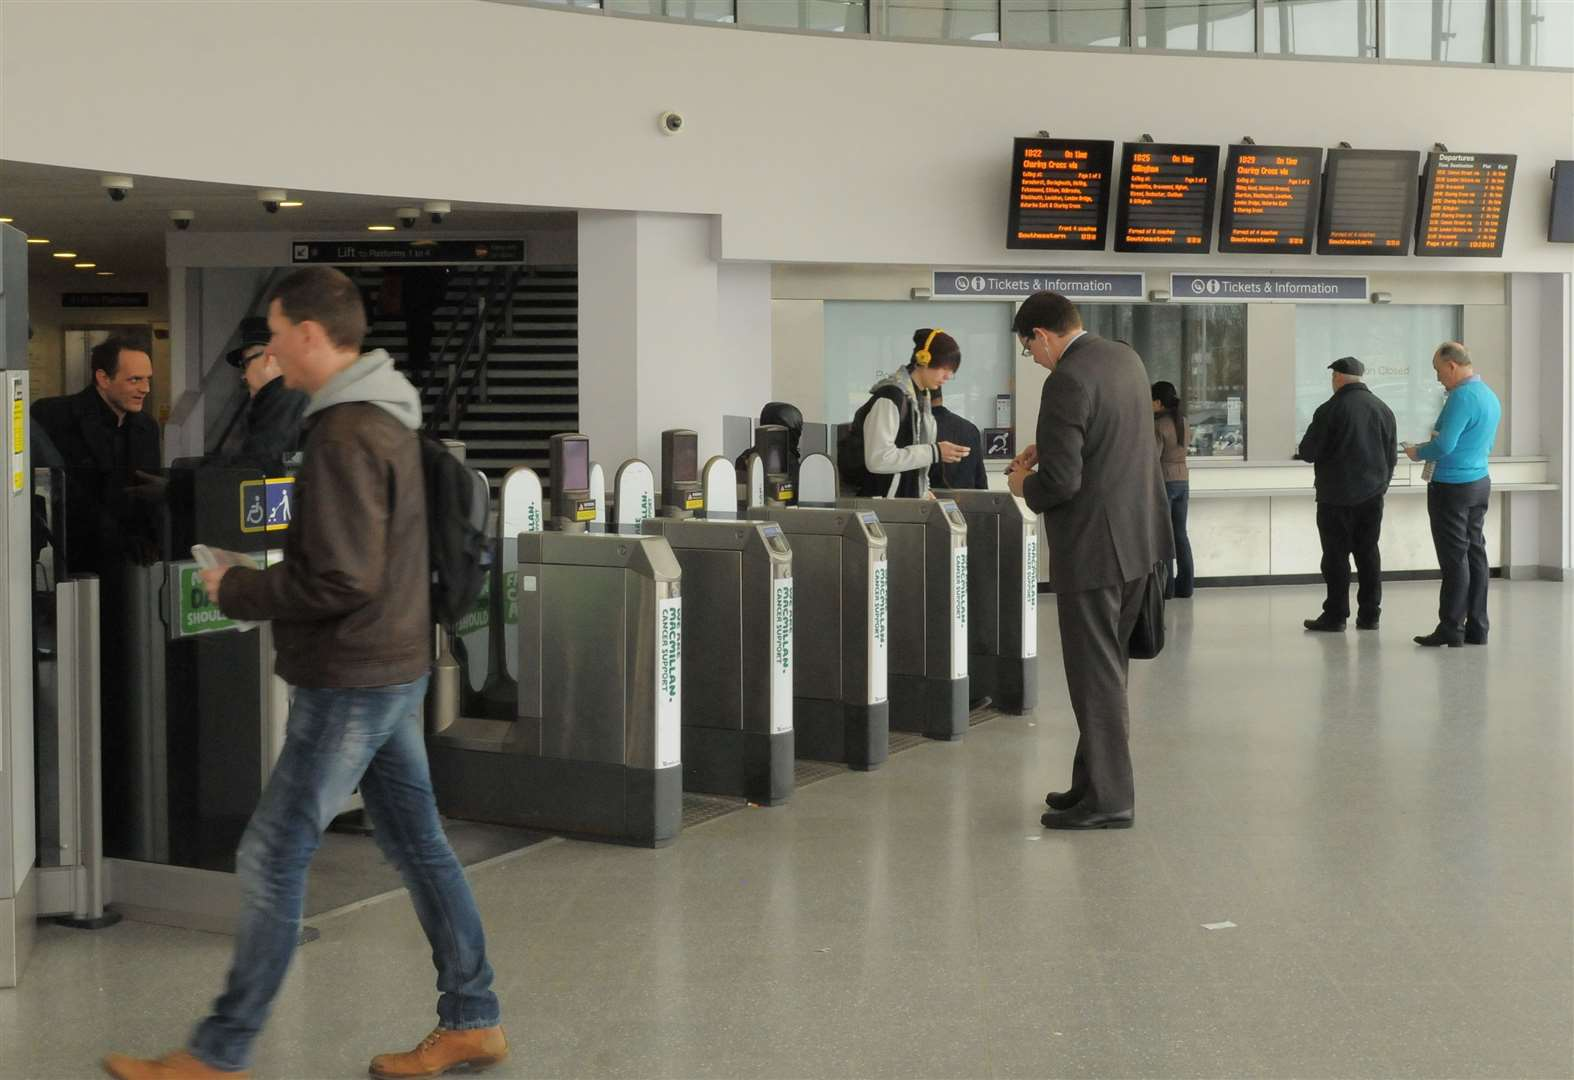 Rail fares set to rise again